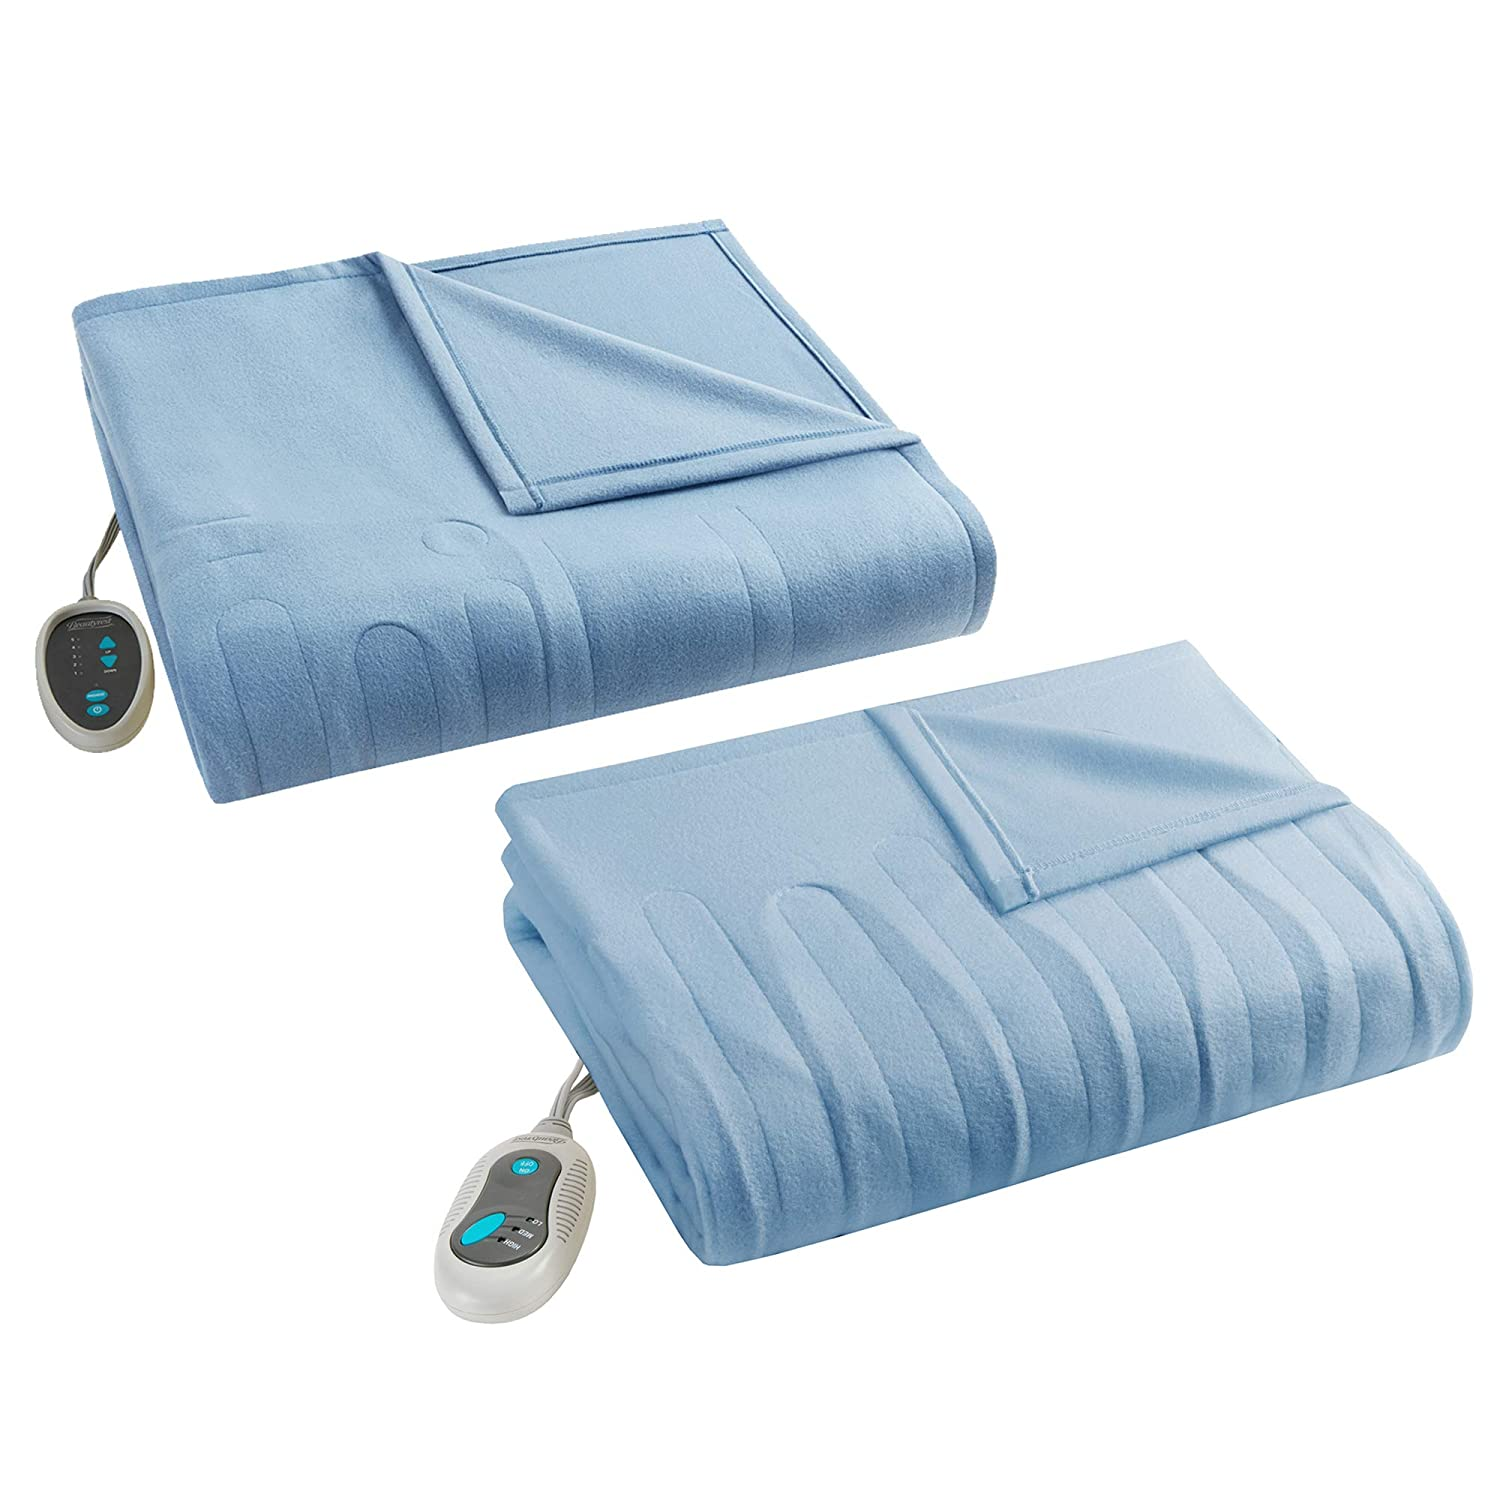 Beautyrest Fleece 2 Piece Electric Blanket Combo Ultra Warm and Soft Heated Throws Bedding Set with Auto Shutoff, Full, Blue